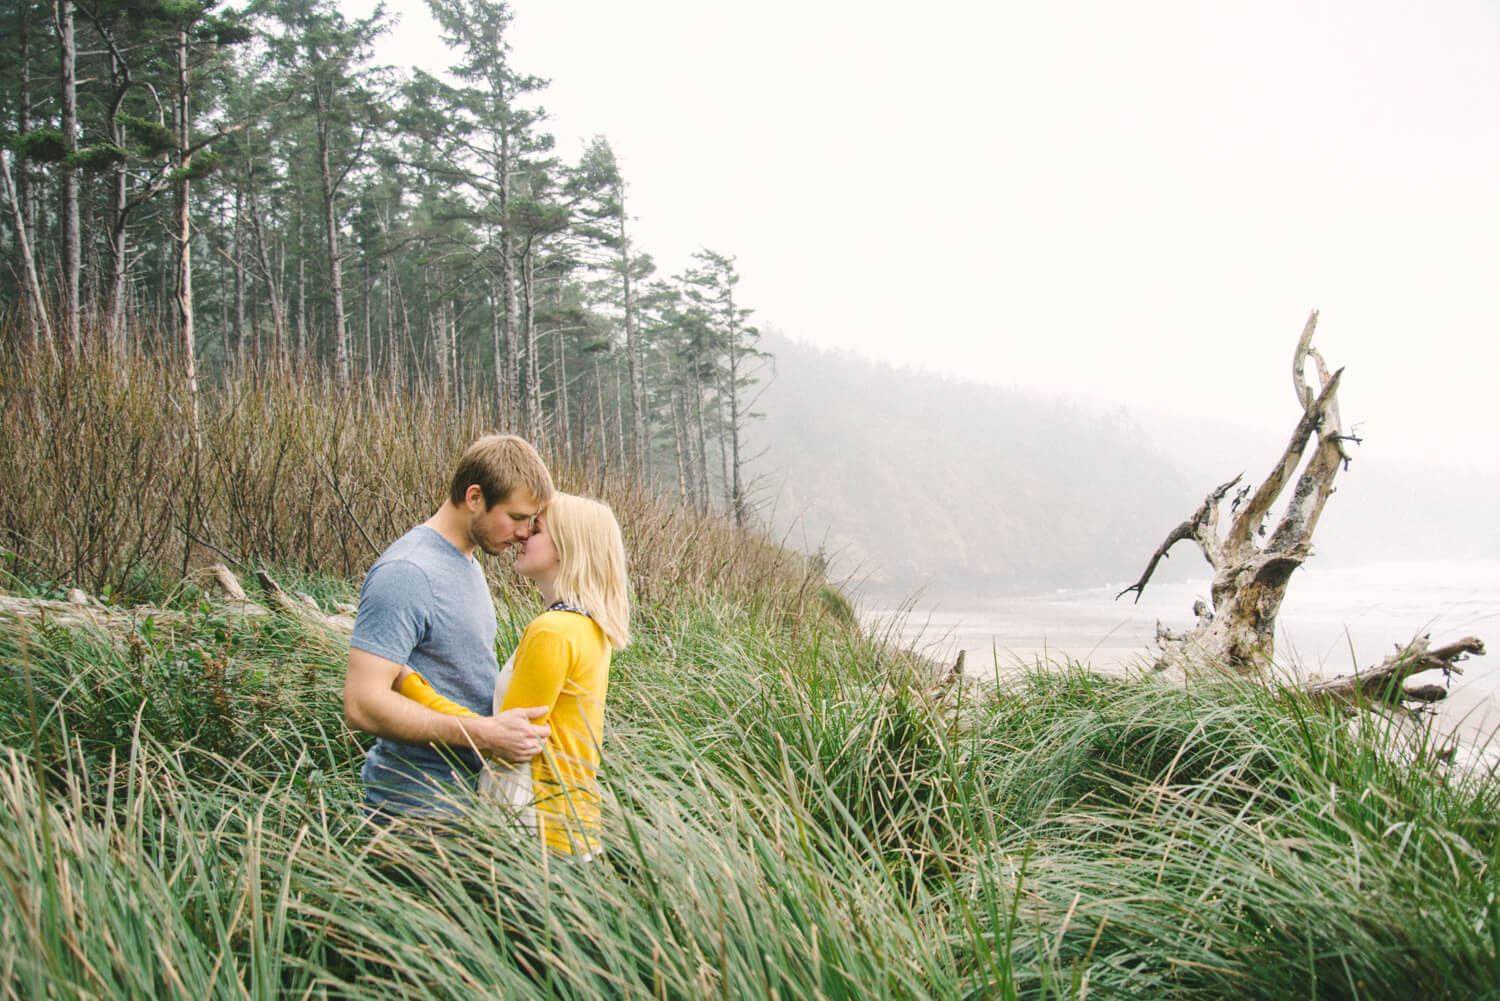 engagement-photography-oregon-coast-ecola-state-park-shelley-marie-photo-N624.jpg